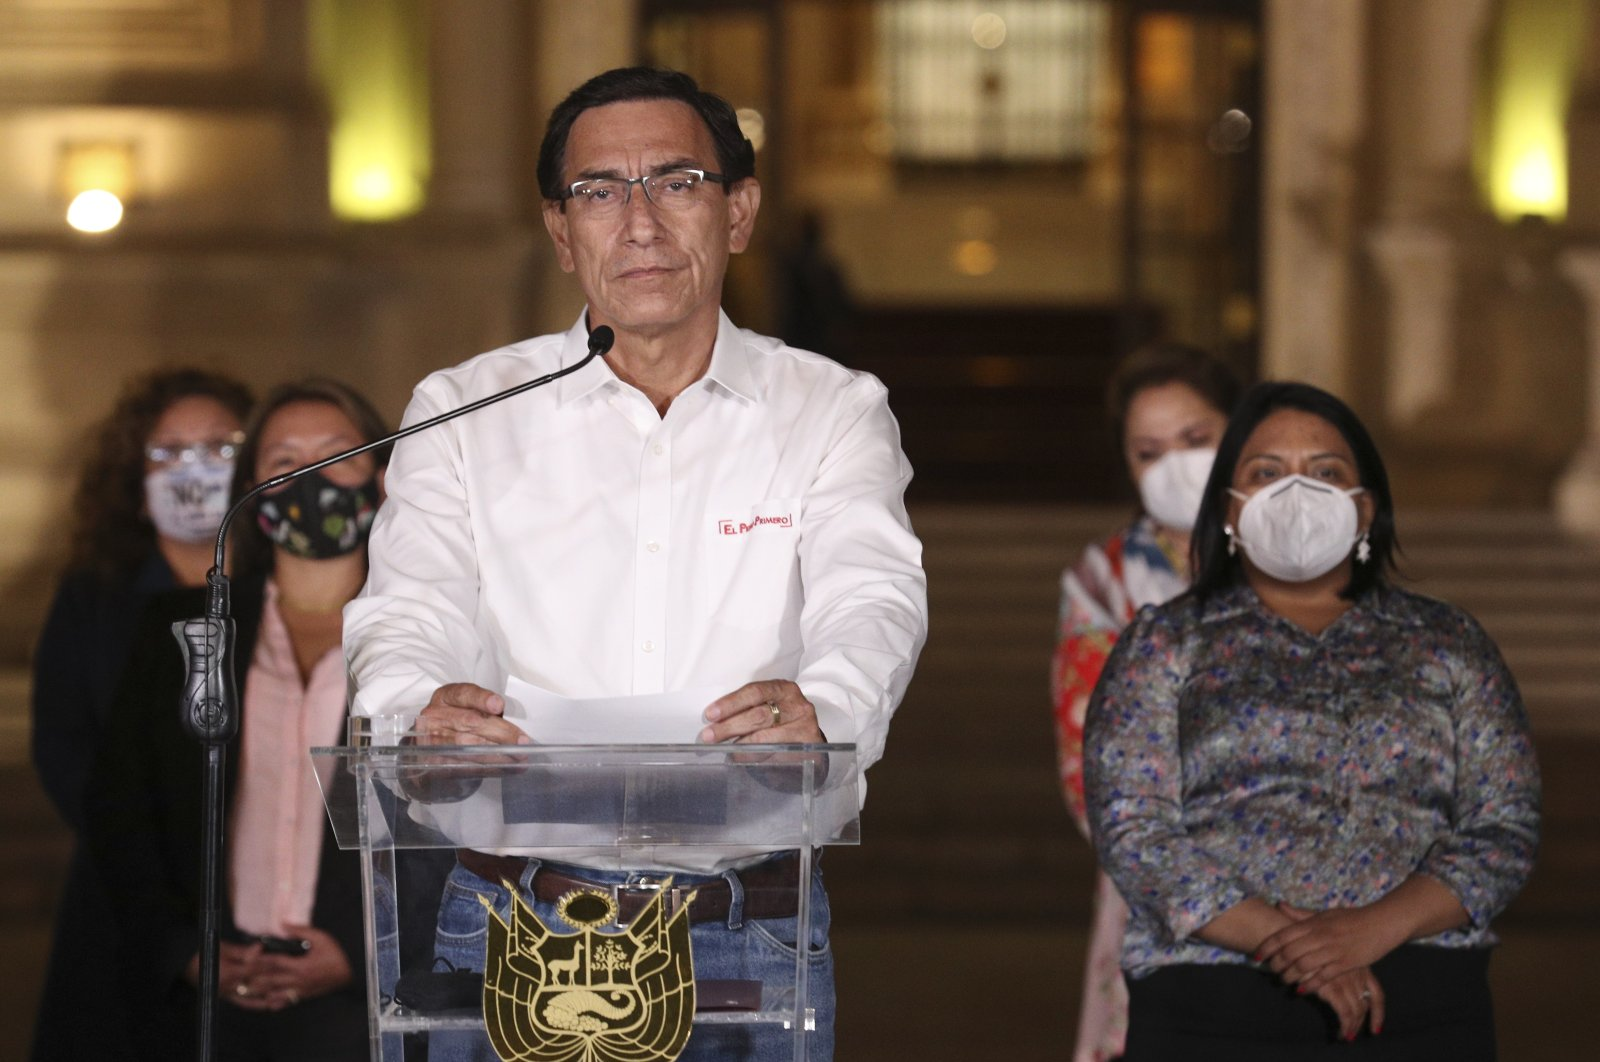 Peru's President Martin Vizcarra speaks in front of the presidential palace after lawmakers voted to remove him from office in Lima, Peru, Nov. 9, 2020. (AP Photo)